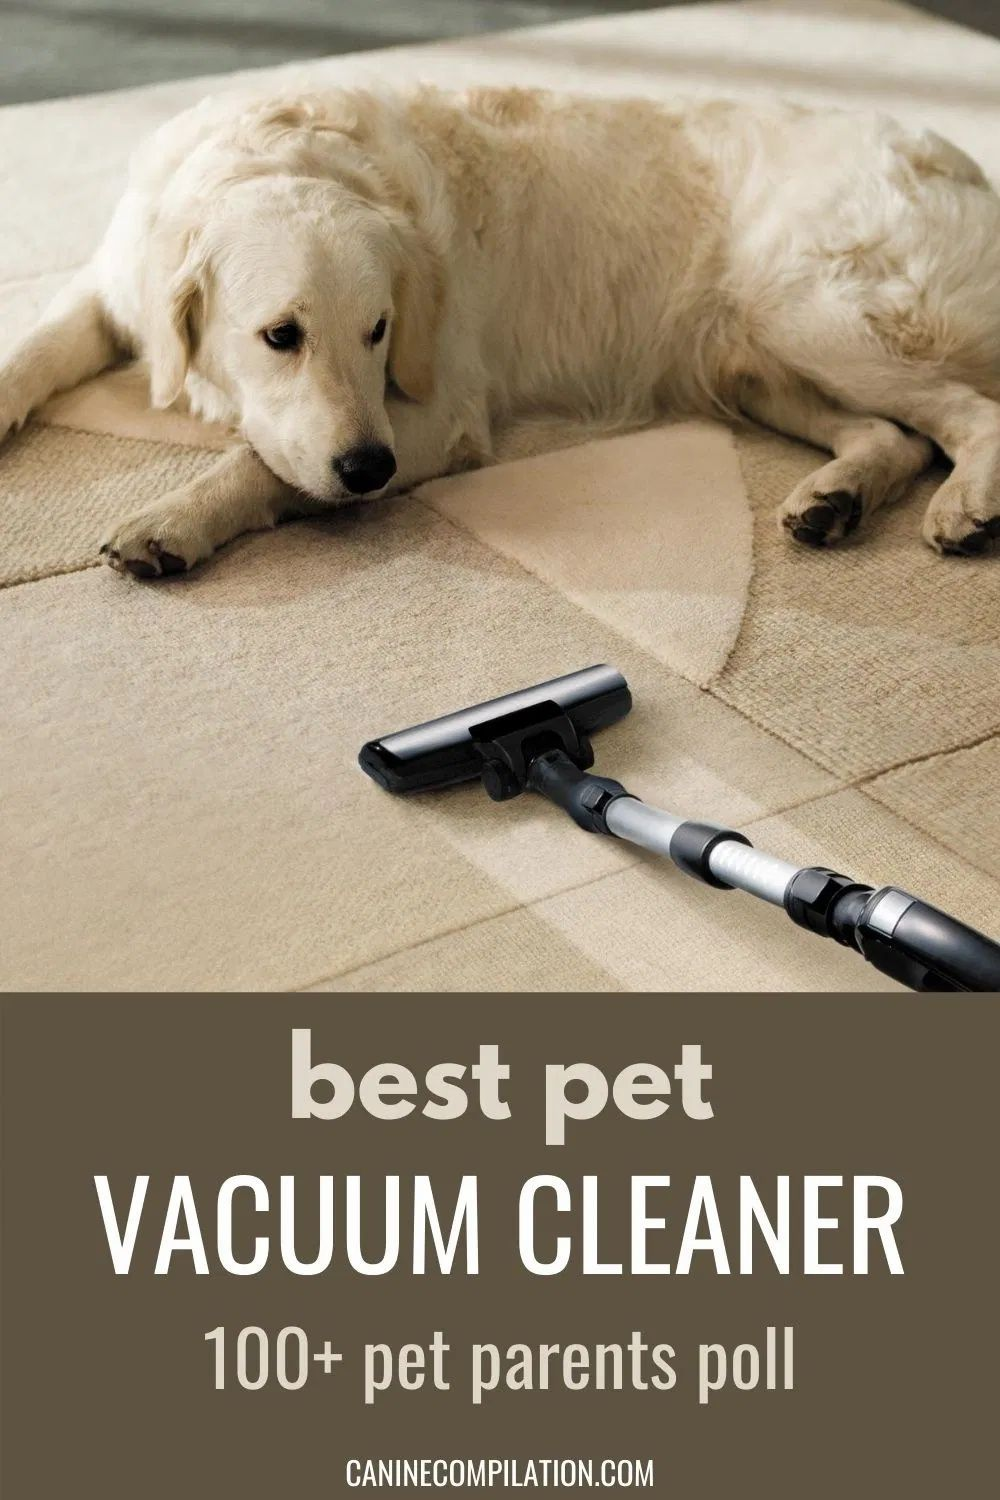 Best UK Vacuum Cleaner For Dogs canine compilation in